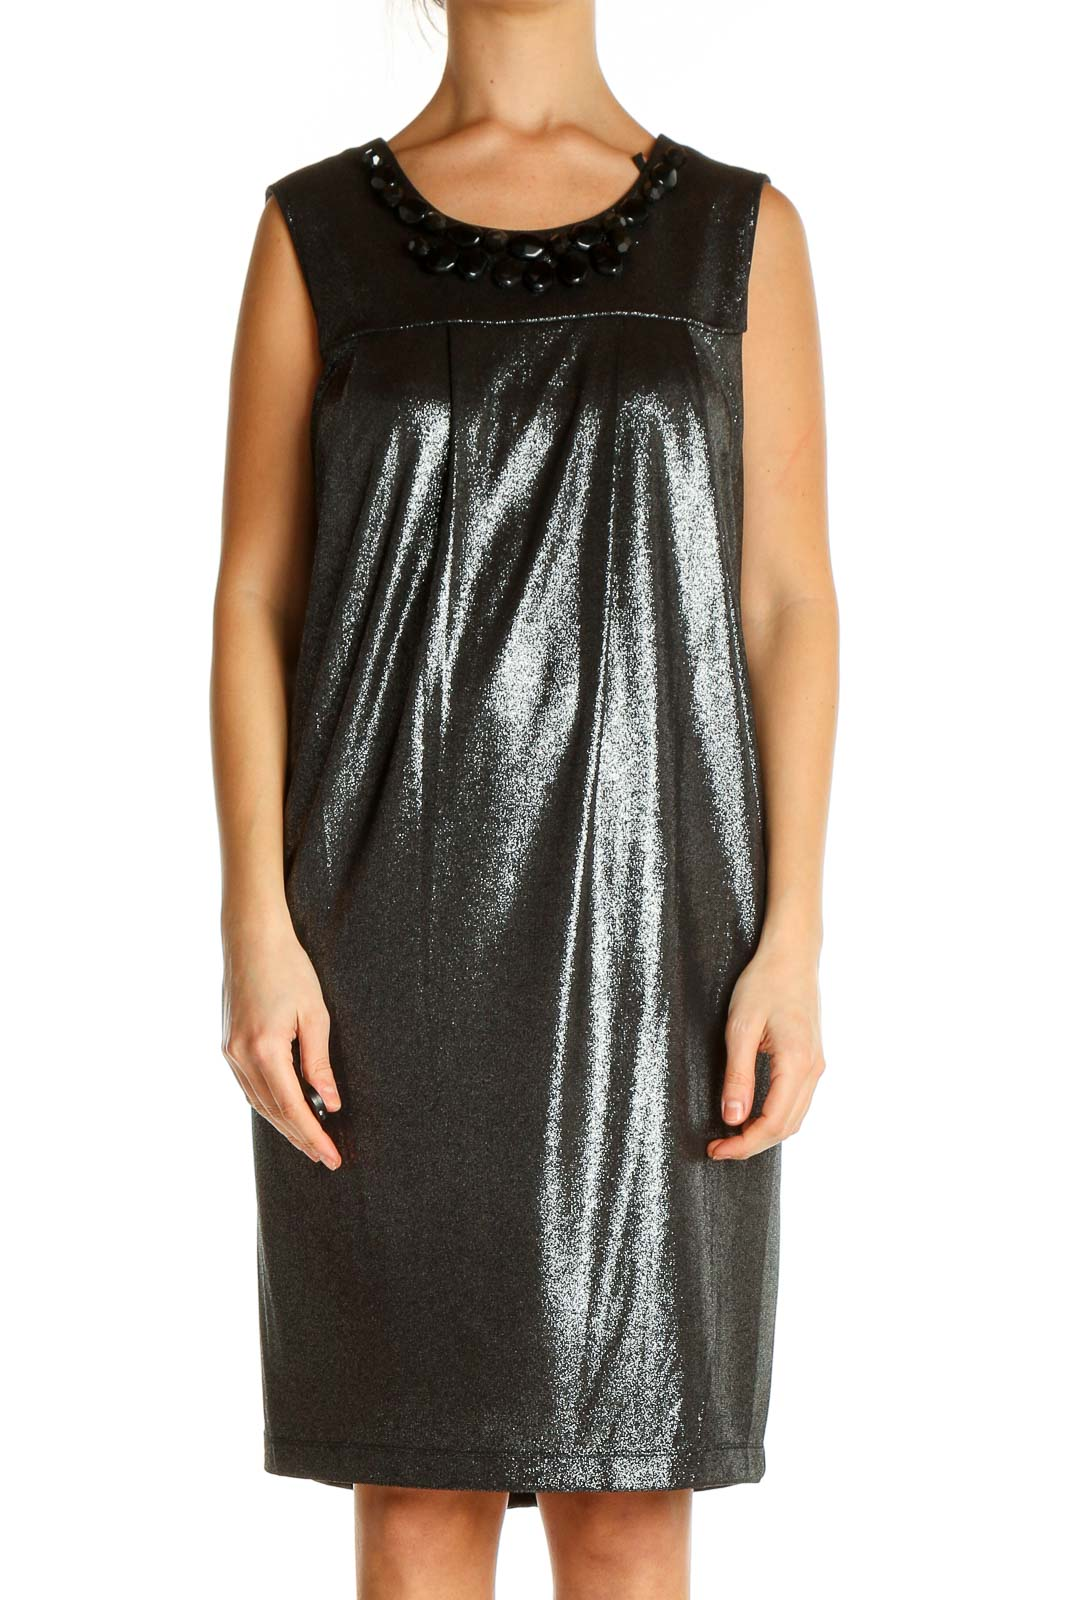 Green Solid Cocktail Shift Dress Front